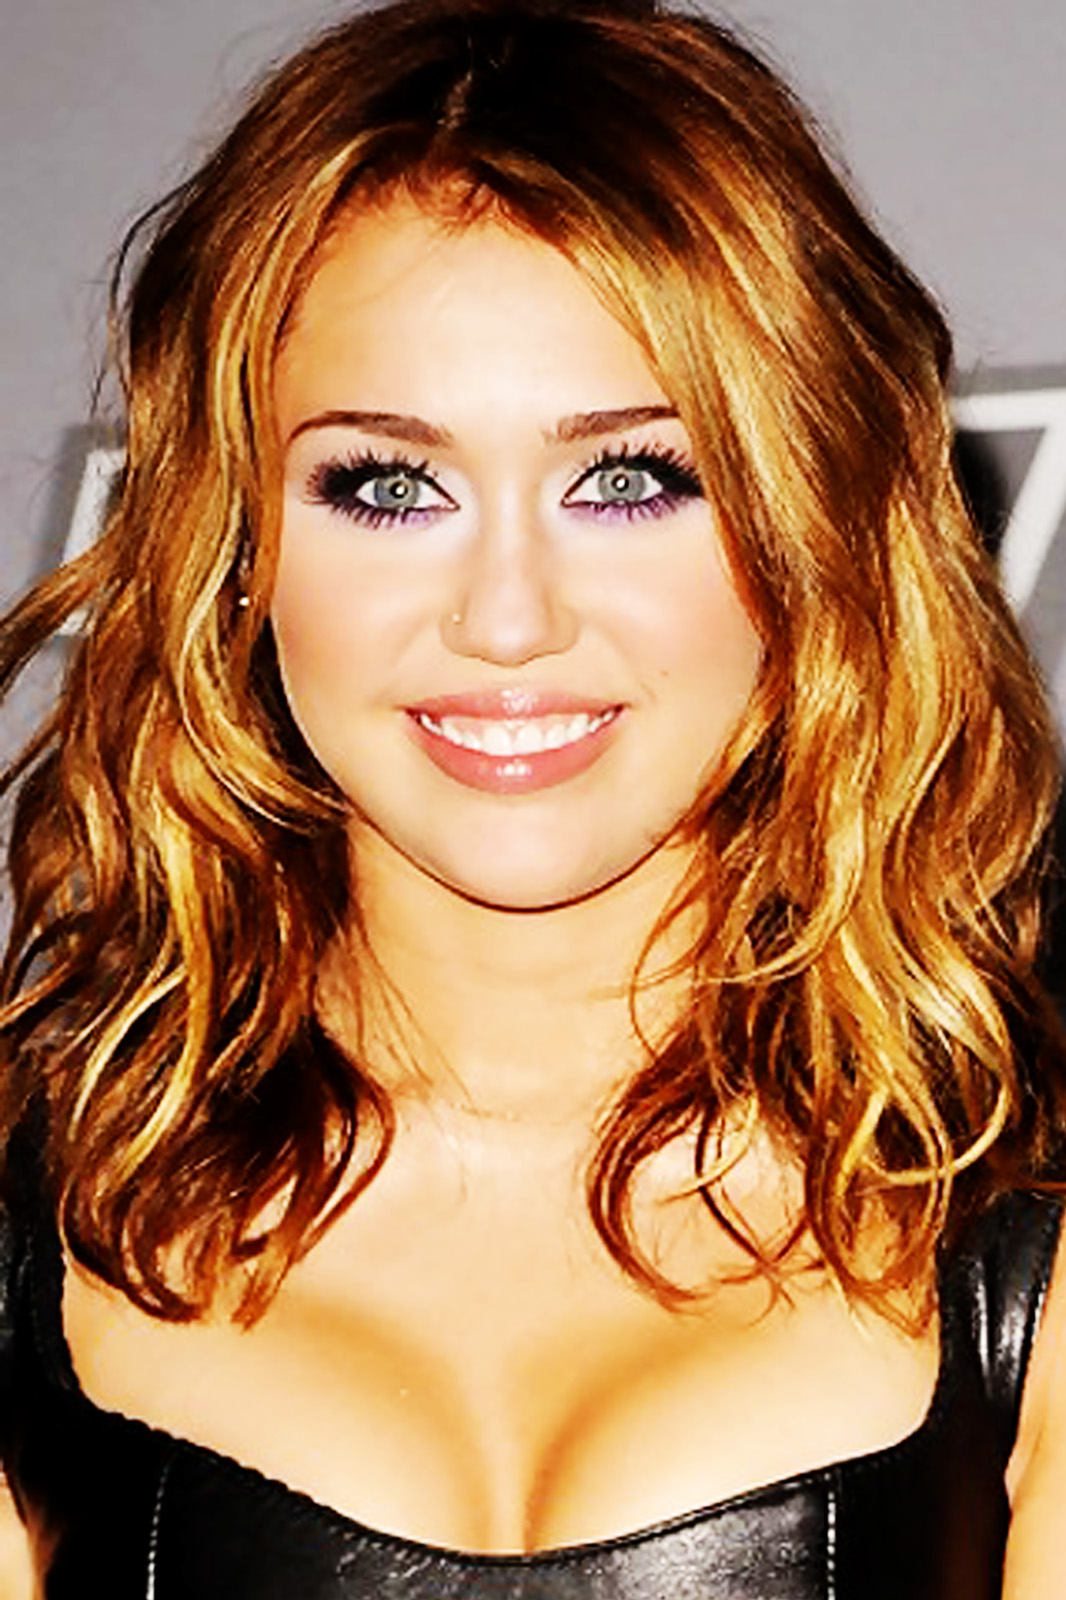 Miley Cyrus Hot Pictures | Miley Cyrus Wallpapers